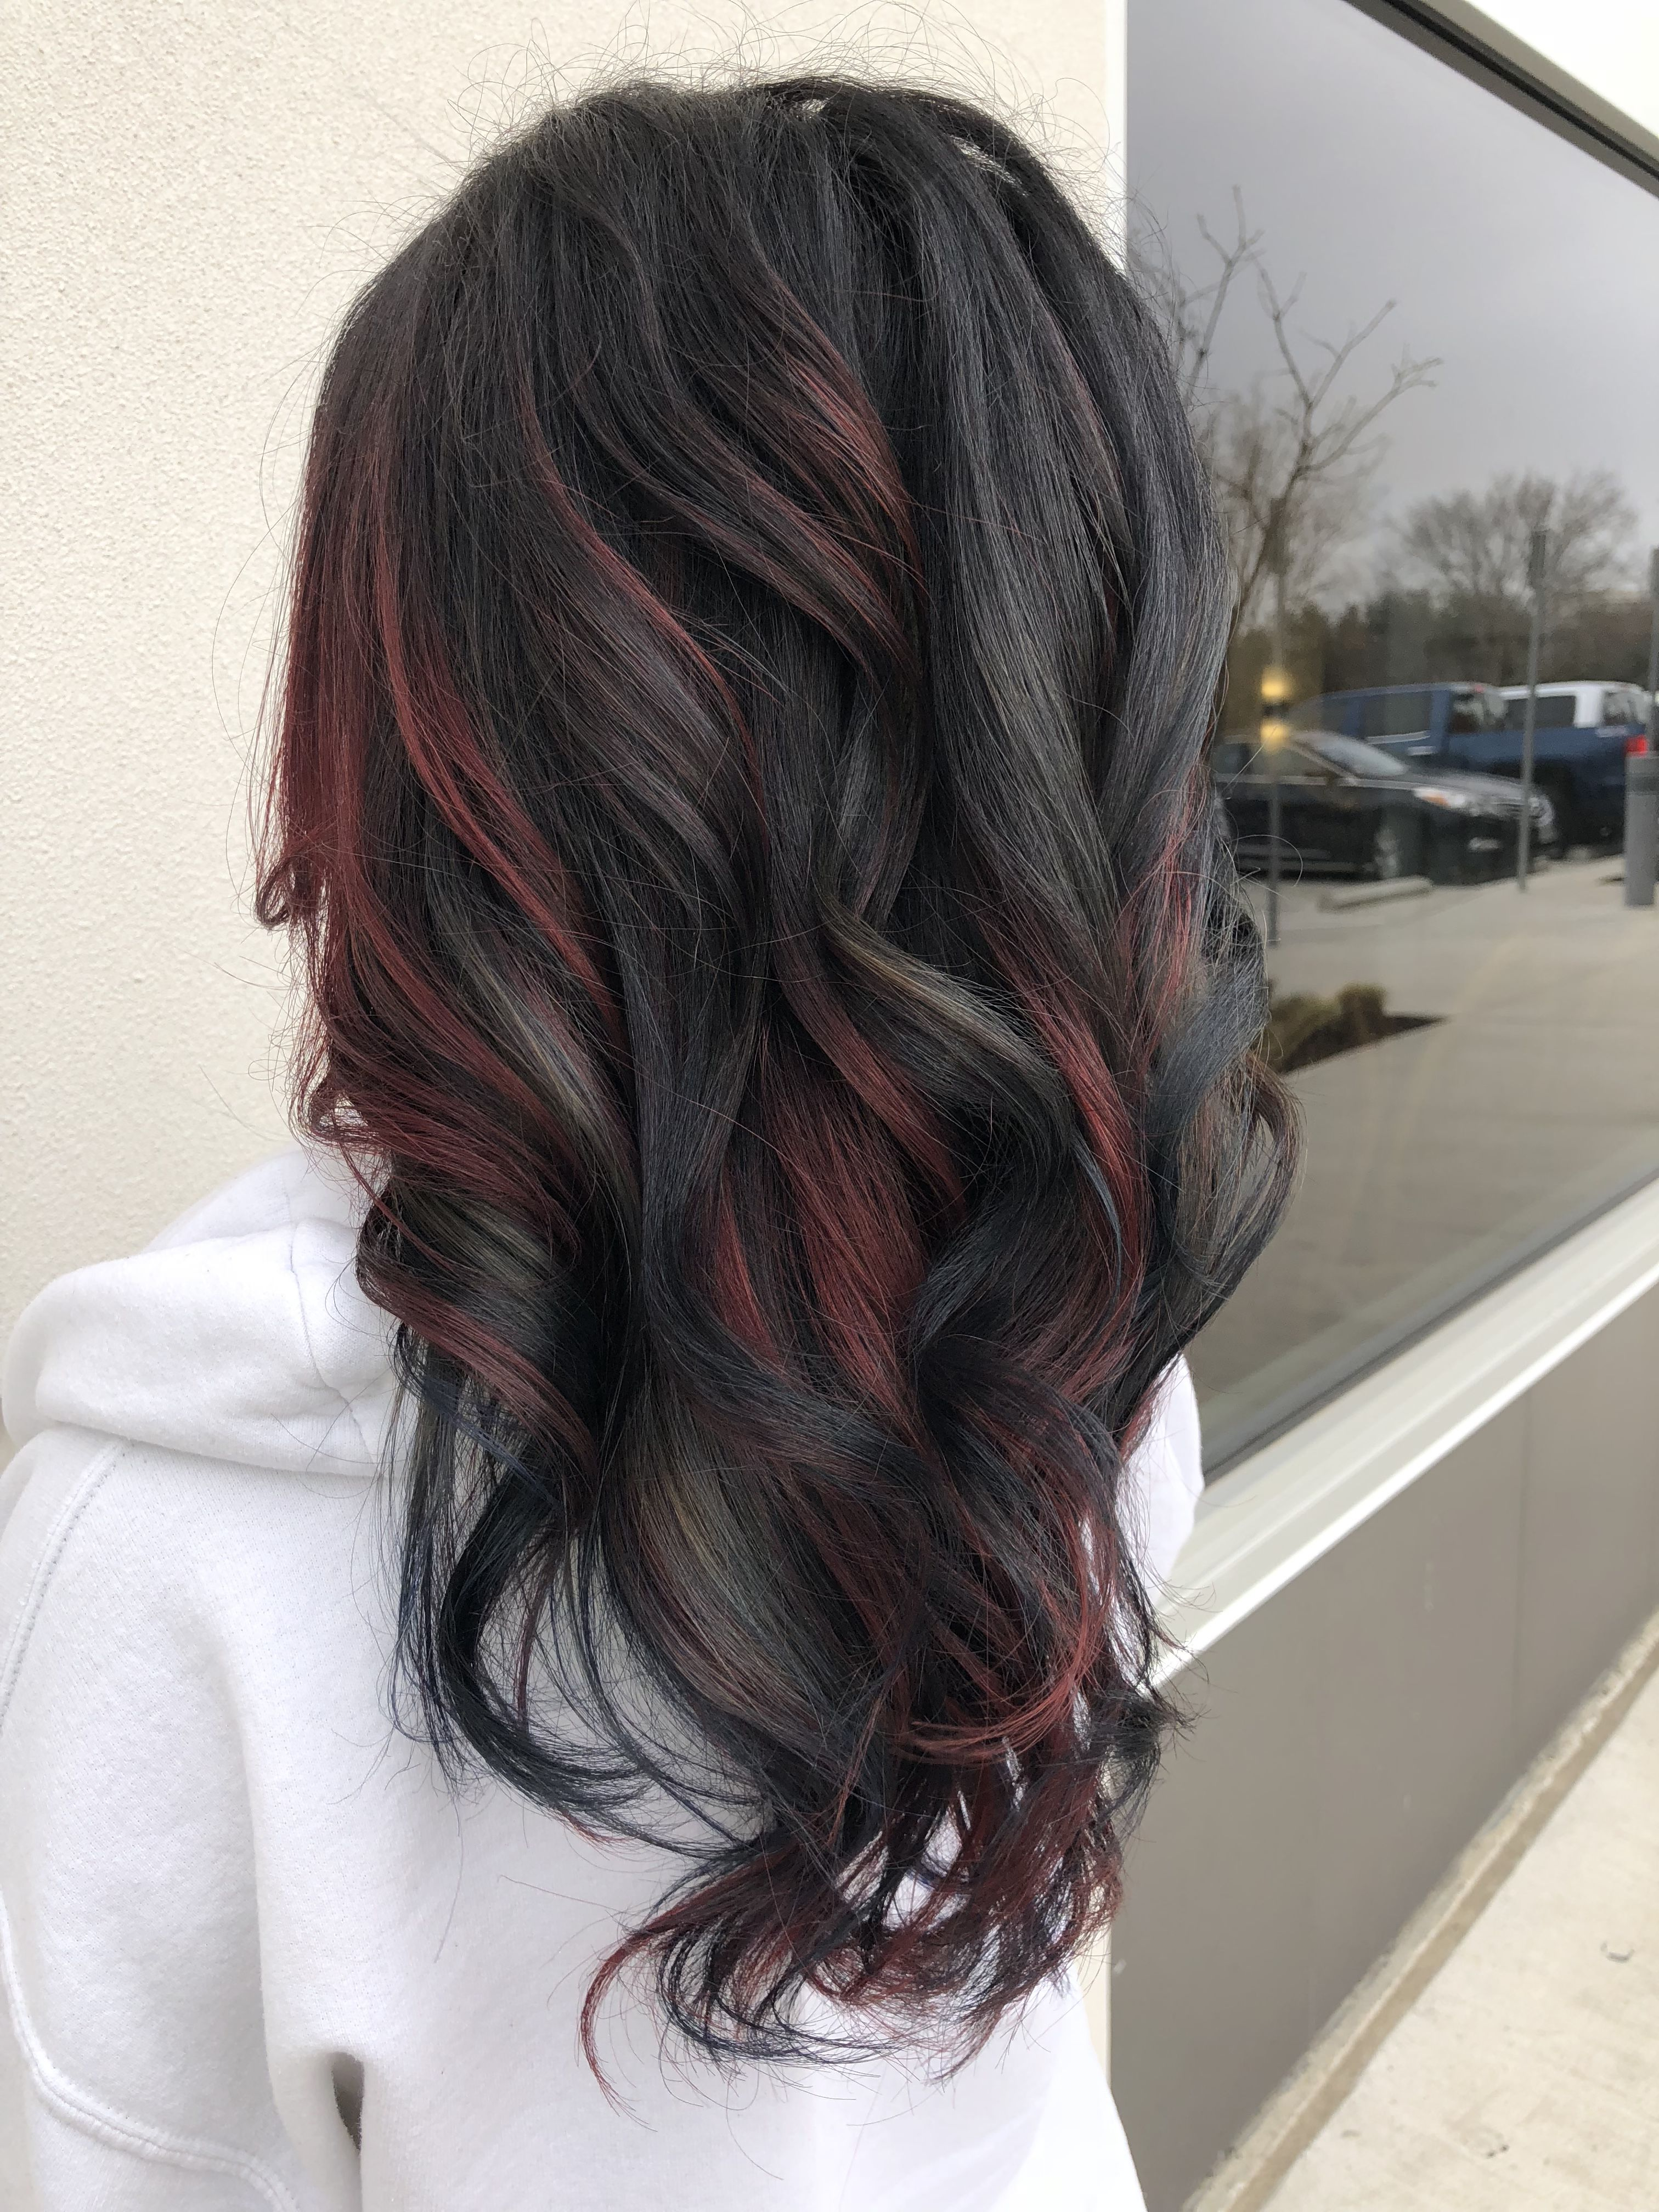 Blue And Red Color On Dark Brown Hair Black Red Hair Black Hair With Red Highlights Red Brown Hair